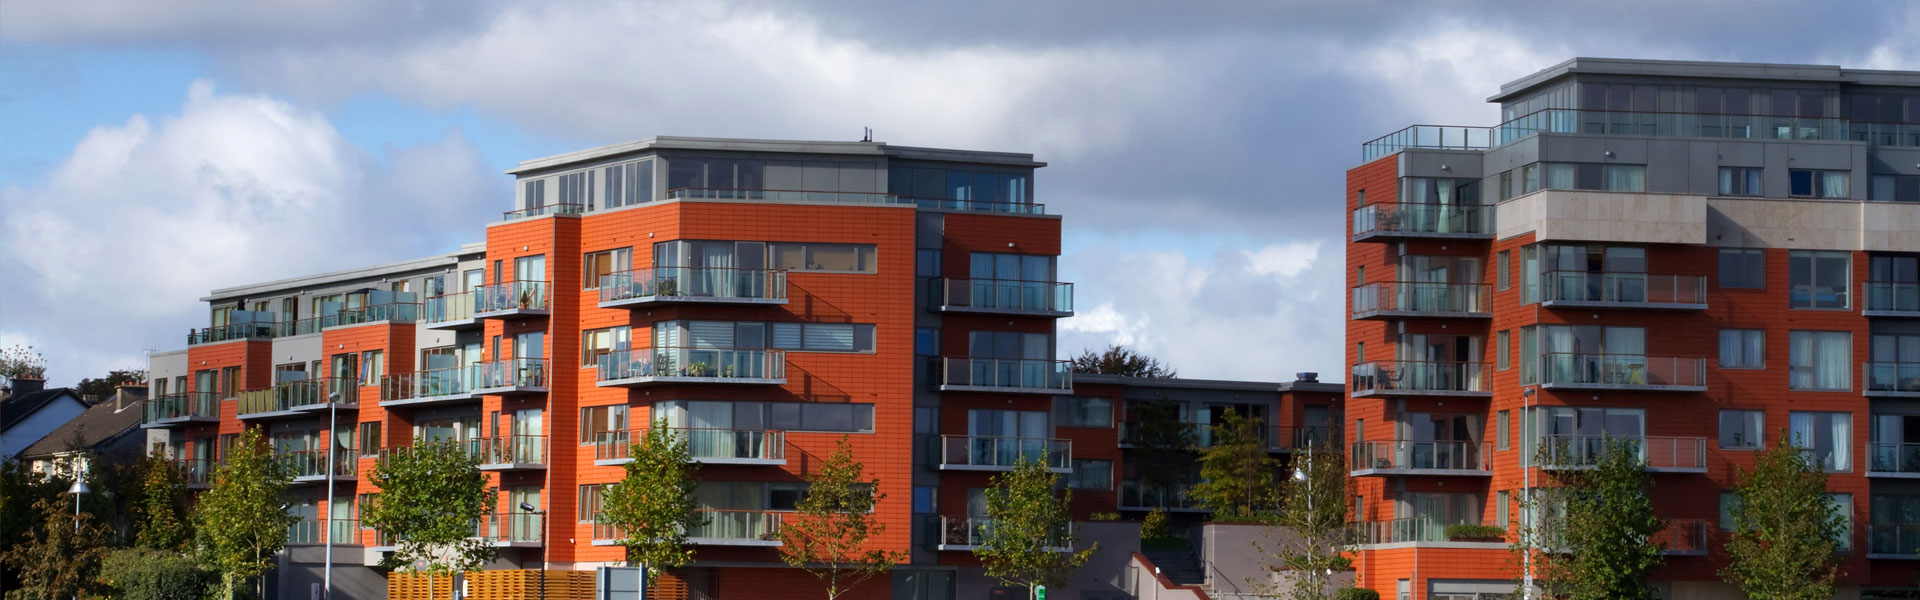 Housing agency in Tullycanna experts